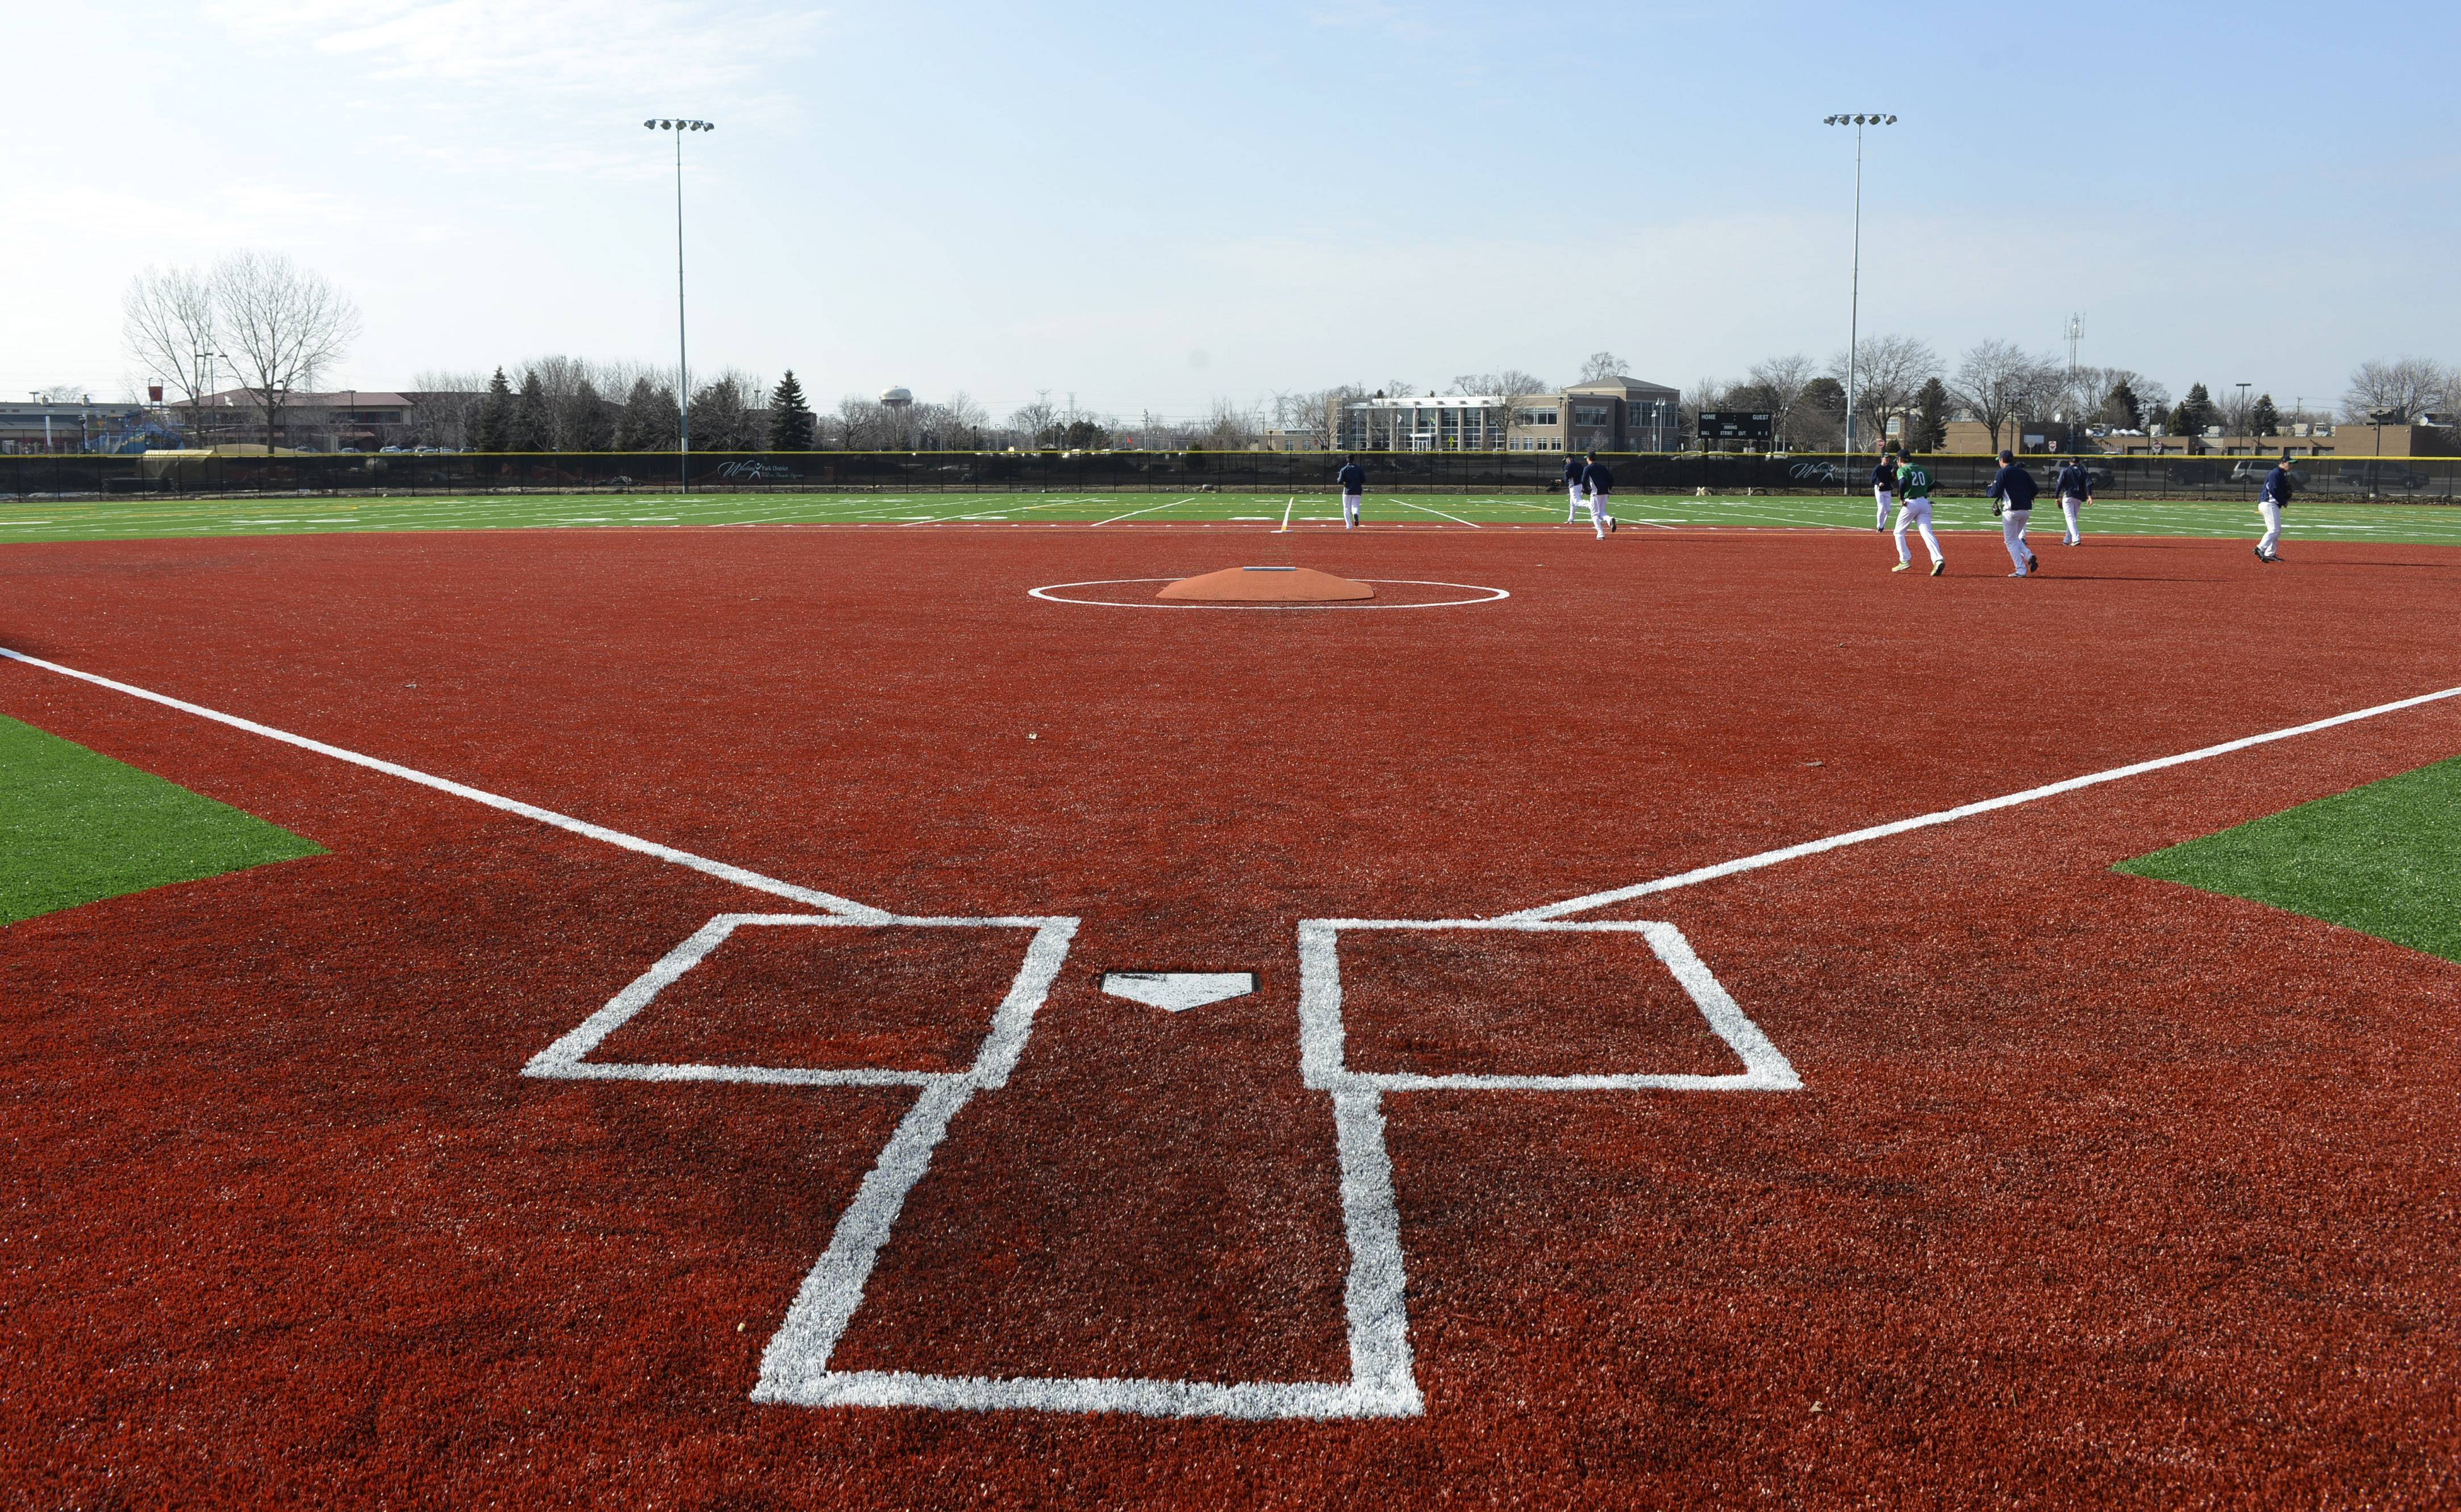 The Wheeling Park District has opened its new athletic complex at the renovated Heritage Park. The complex, part of a $38 million park overhaul, features four athletic fields with artificial turf for baseball, softball, soccer and football.